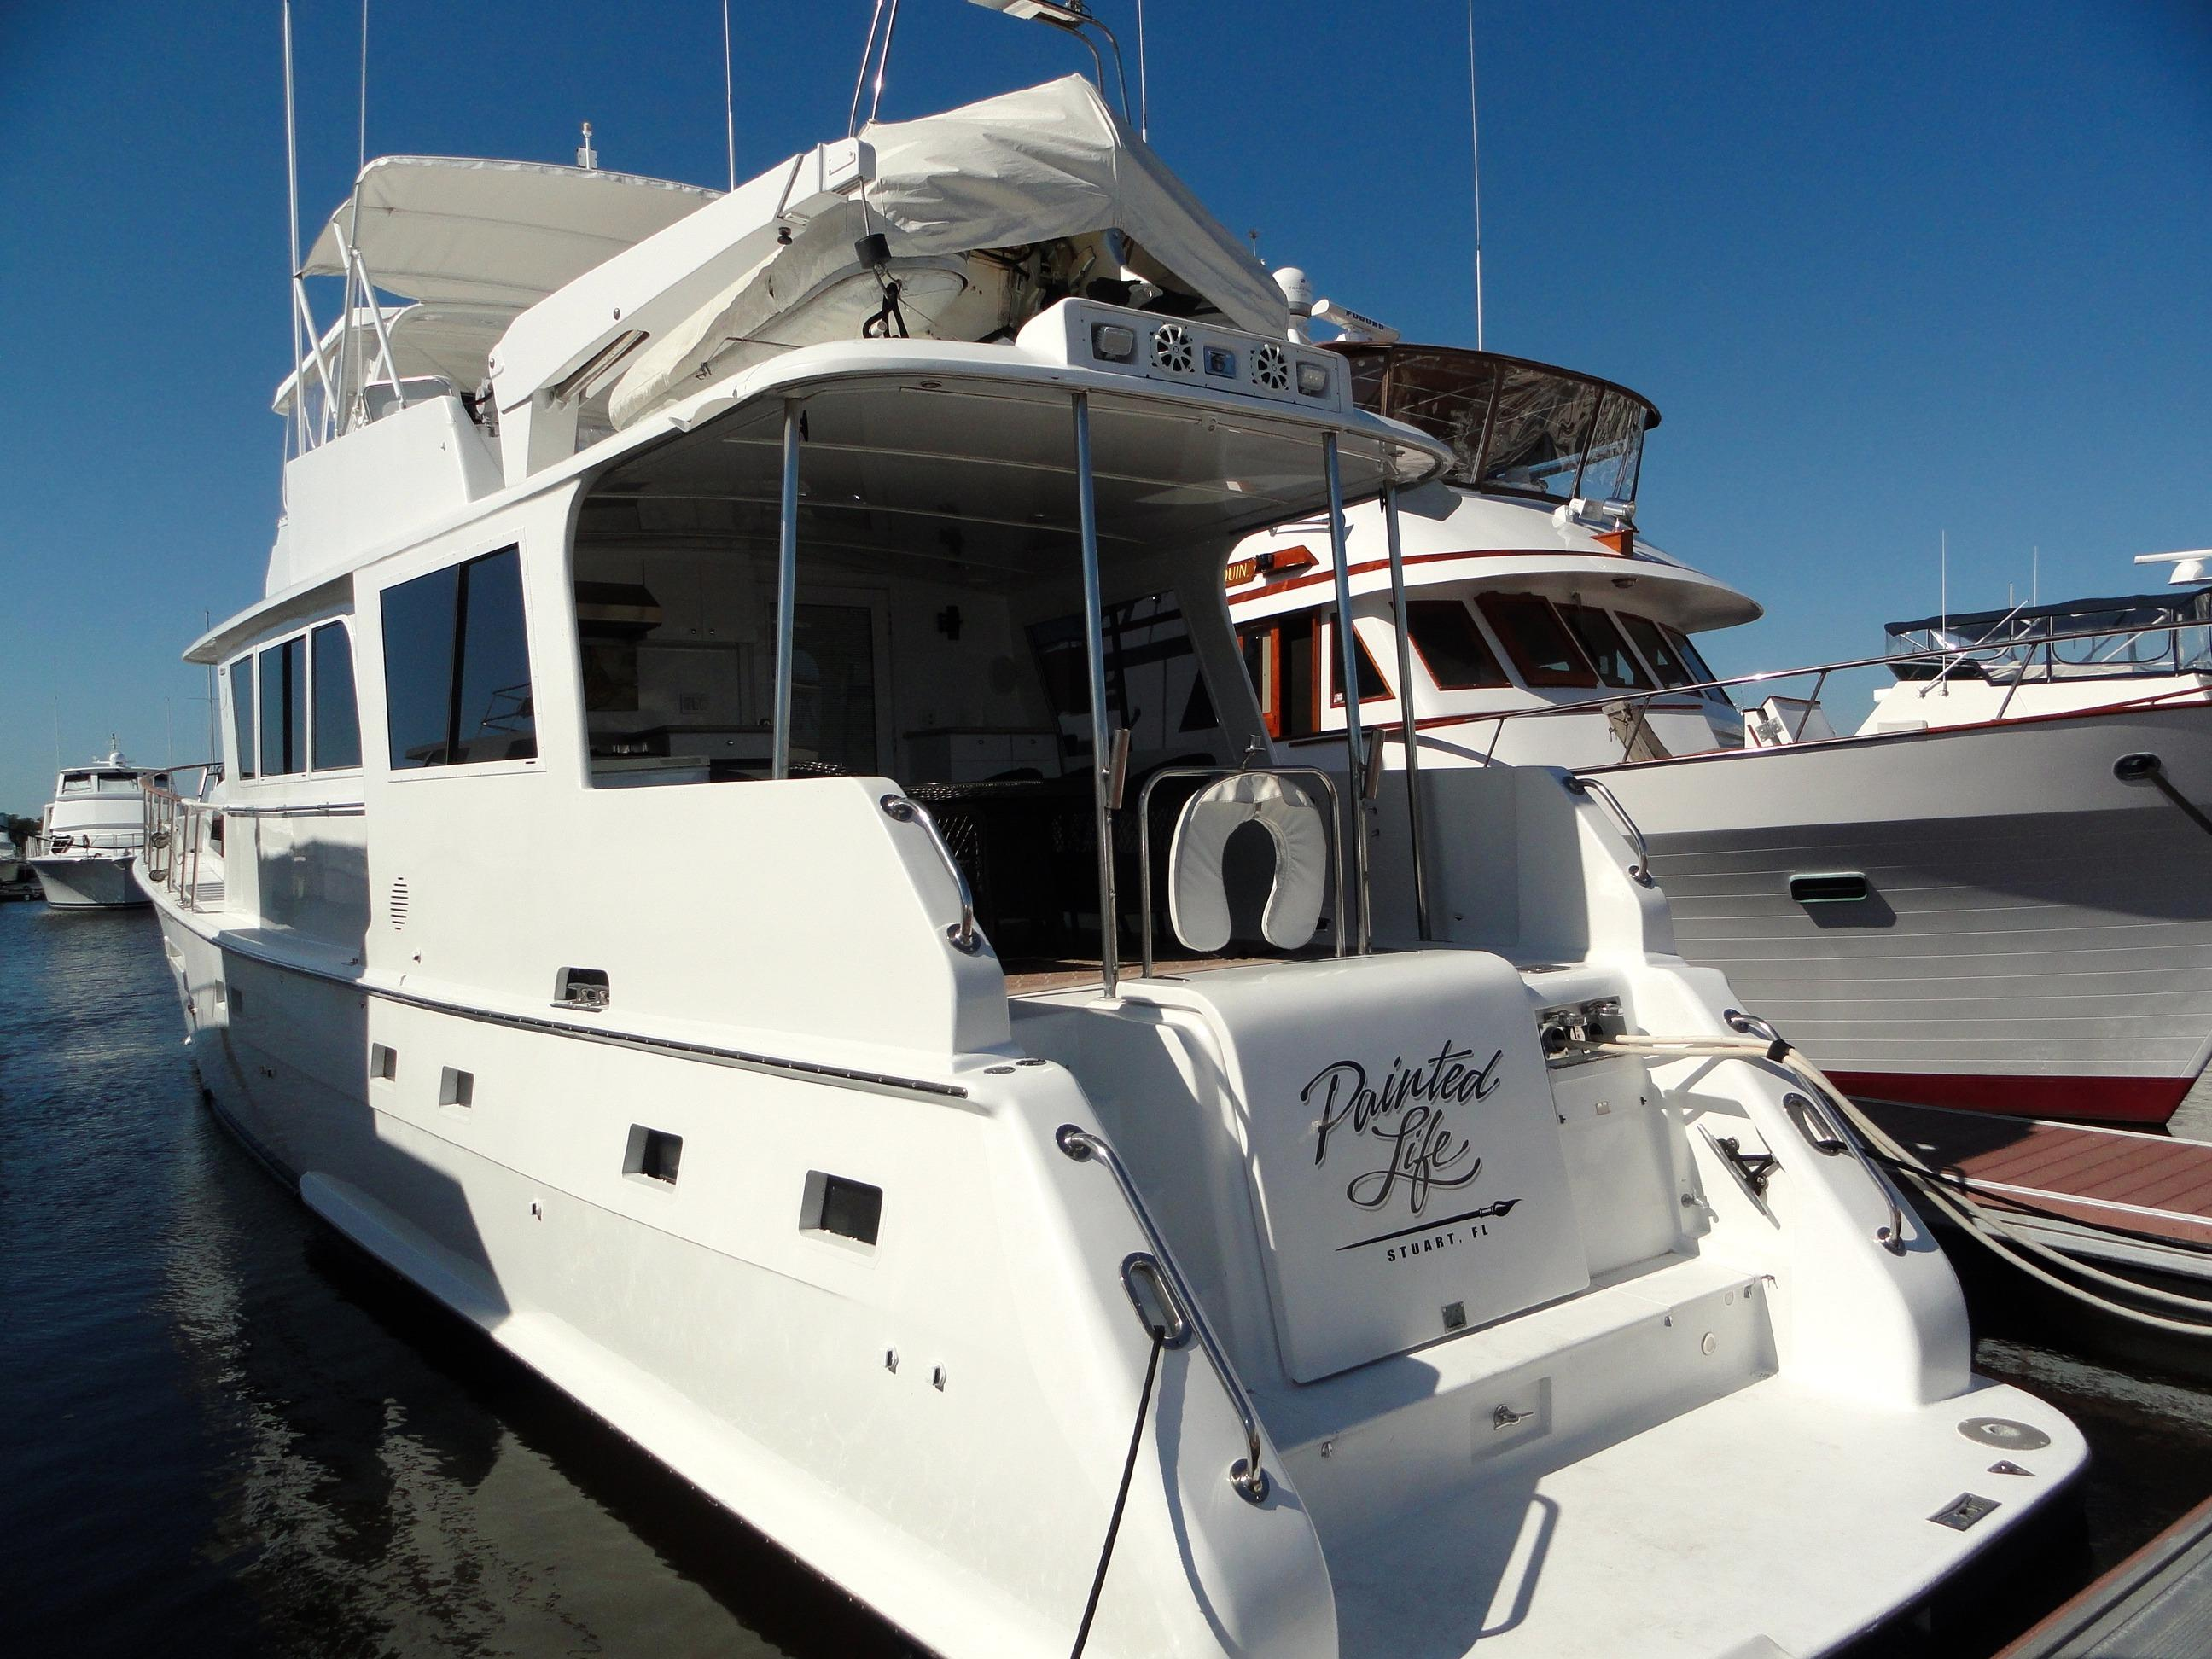 1979 hatteras motor yacht for sale for 72 hatteras motor yacht for sale